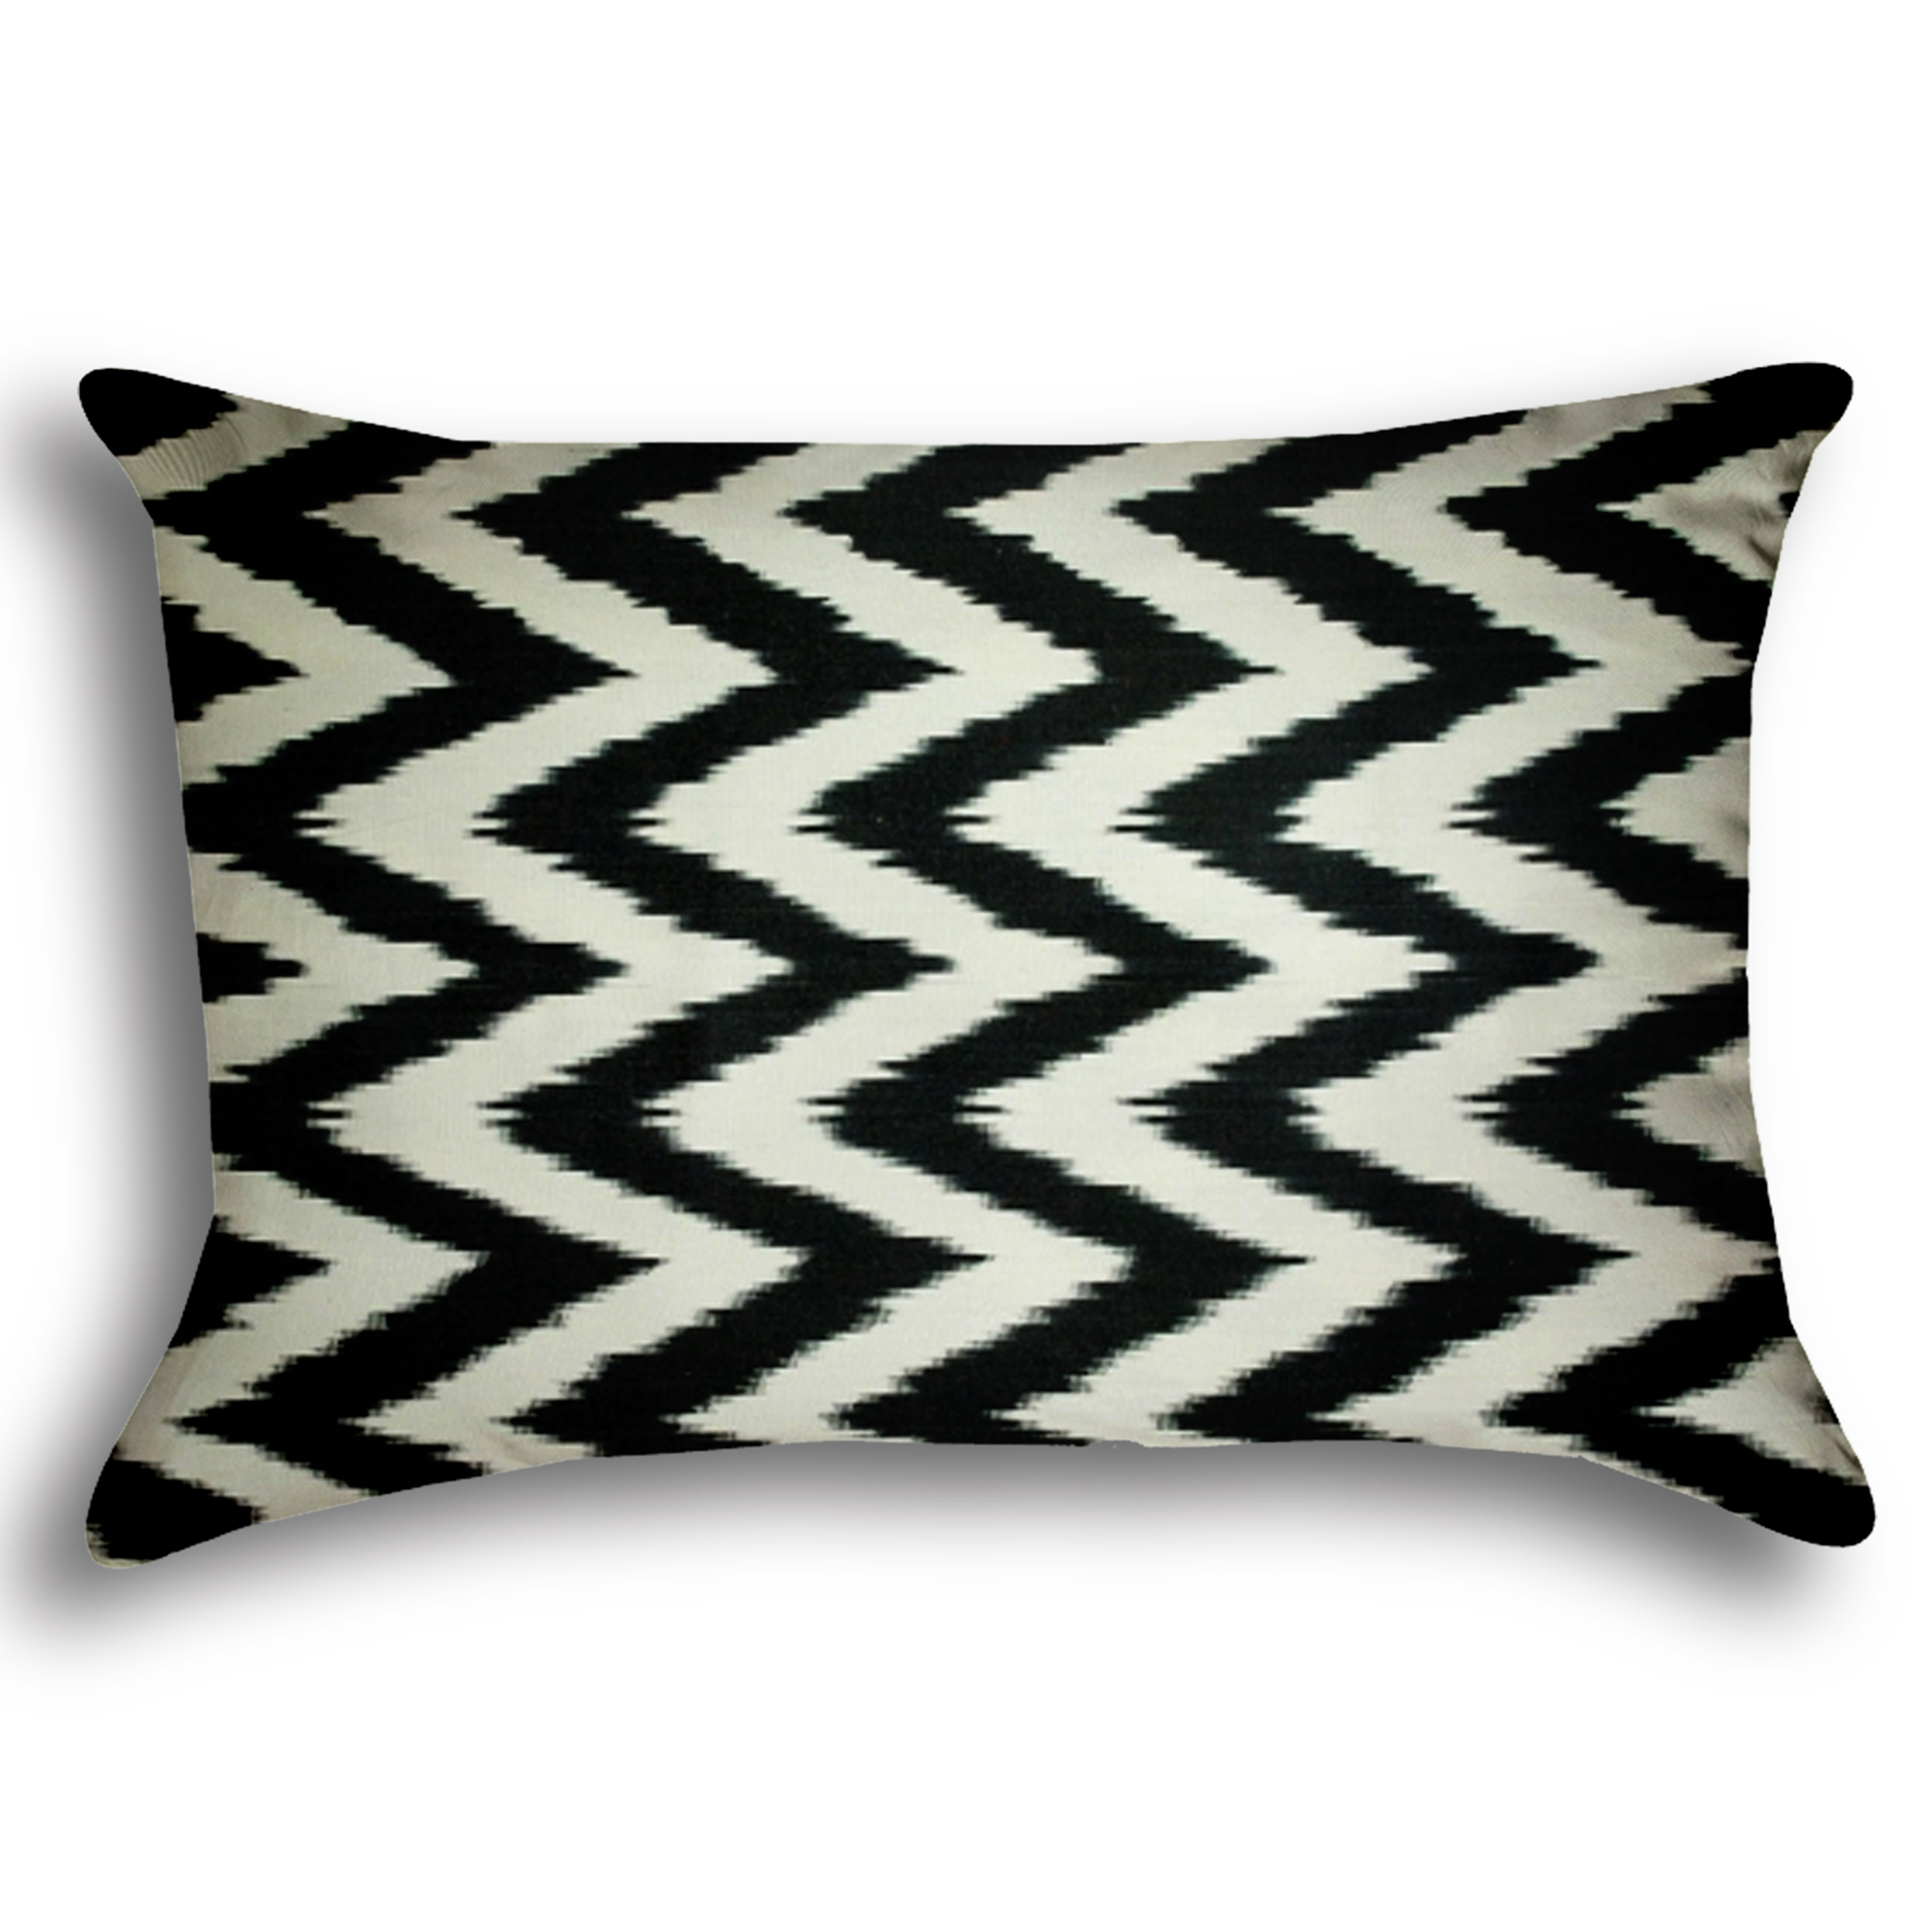 big-chefs-cafe-and-brasserie-silk-ikat-pillow-0002-square